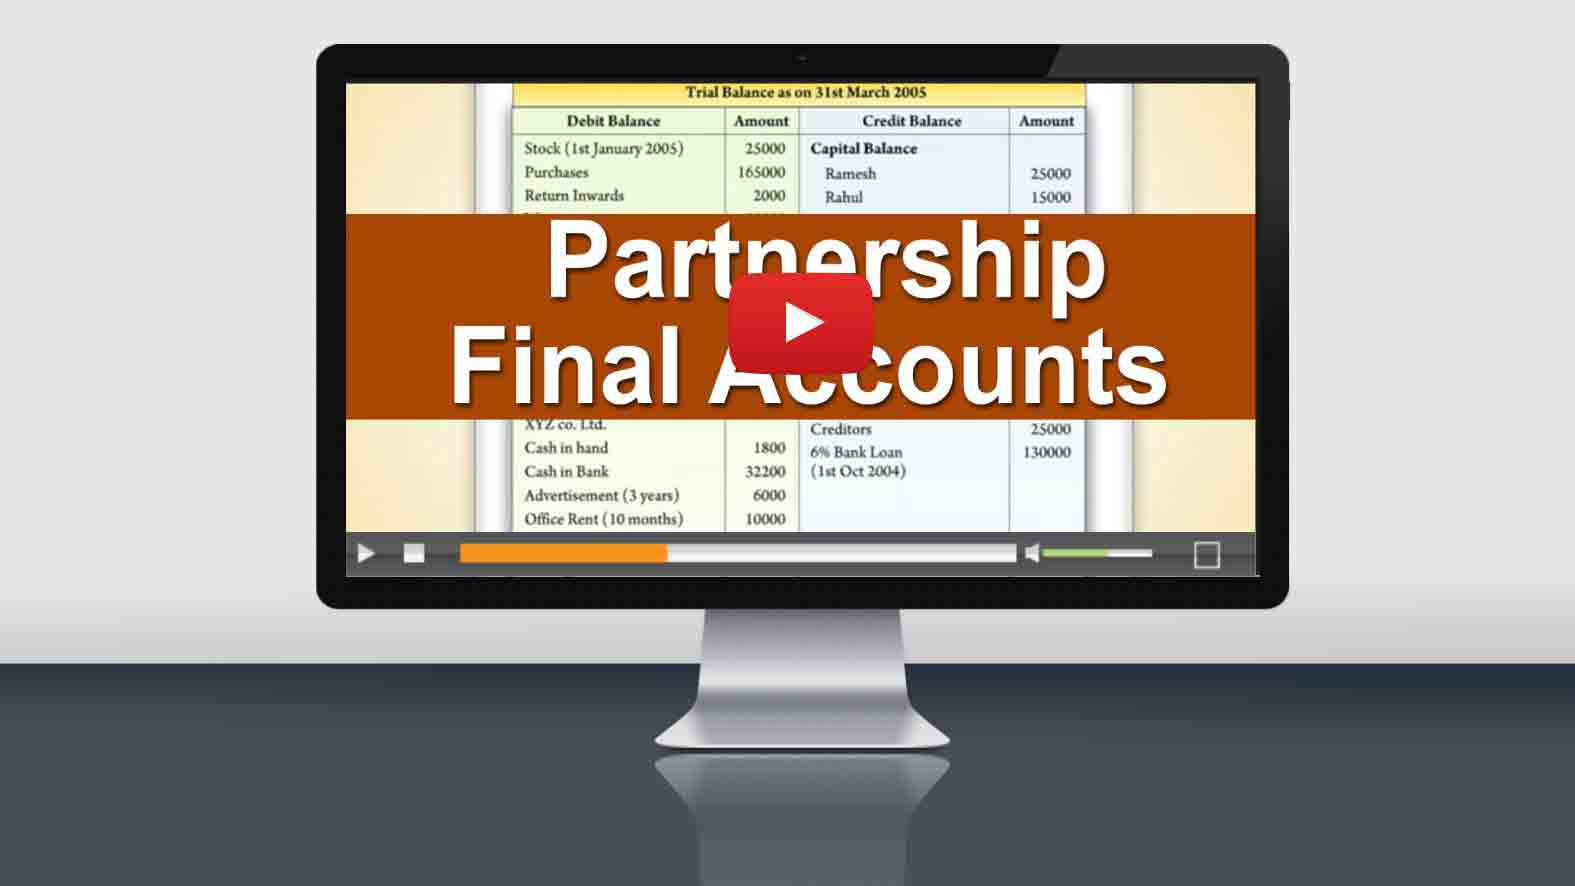 Partnership-Final-Accounts-12th-Std-Bookkeeping-Commerce-Home-Revise